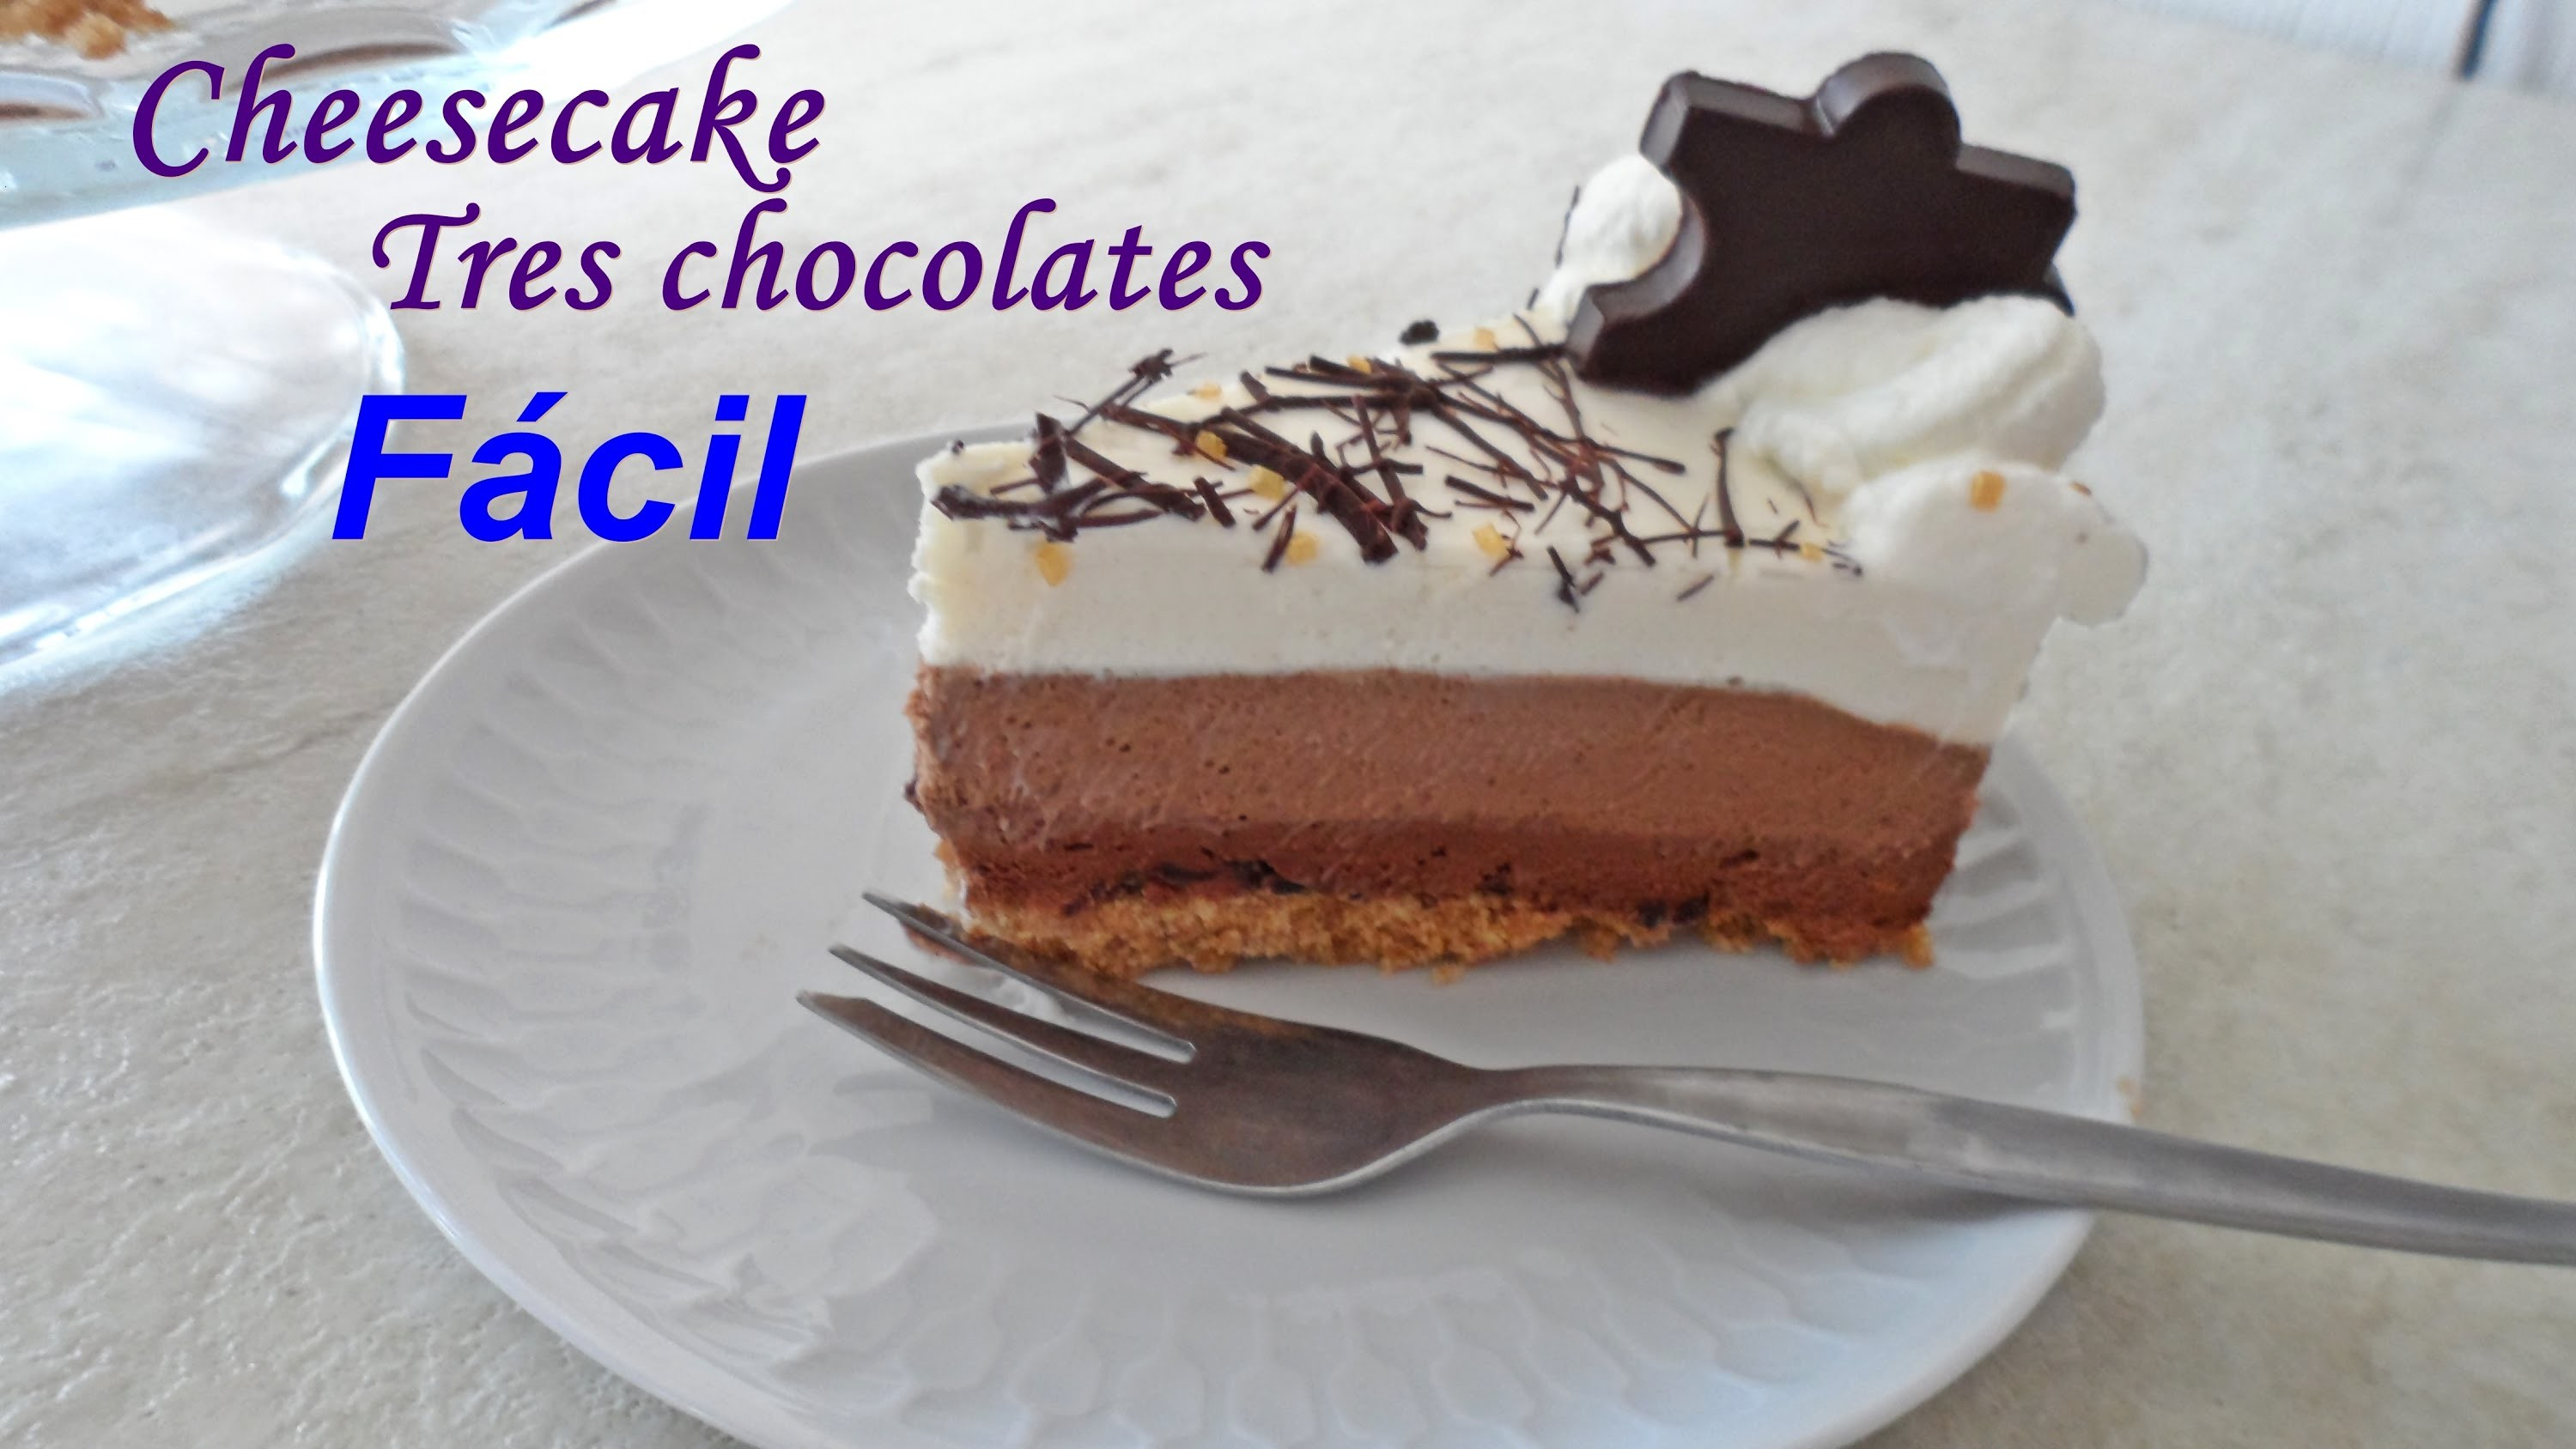 Cheesecake tres chocolates Facil, tarta de queso triple chocolate